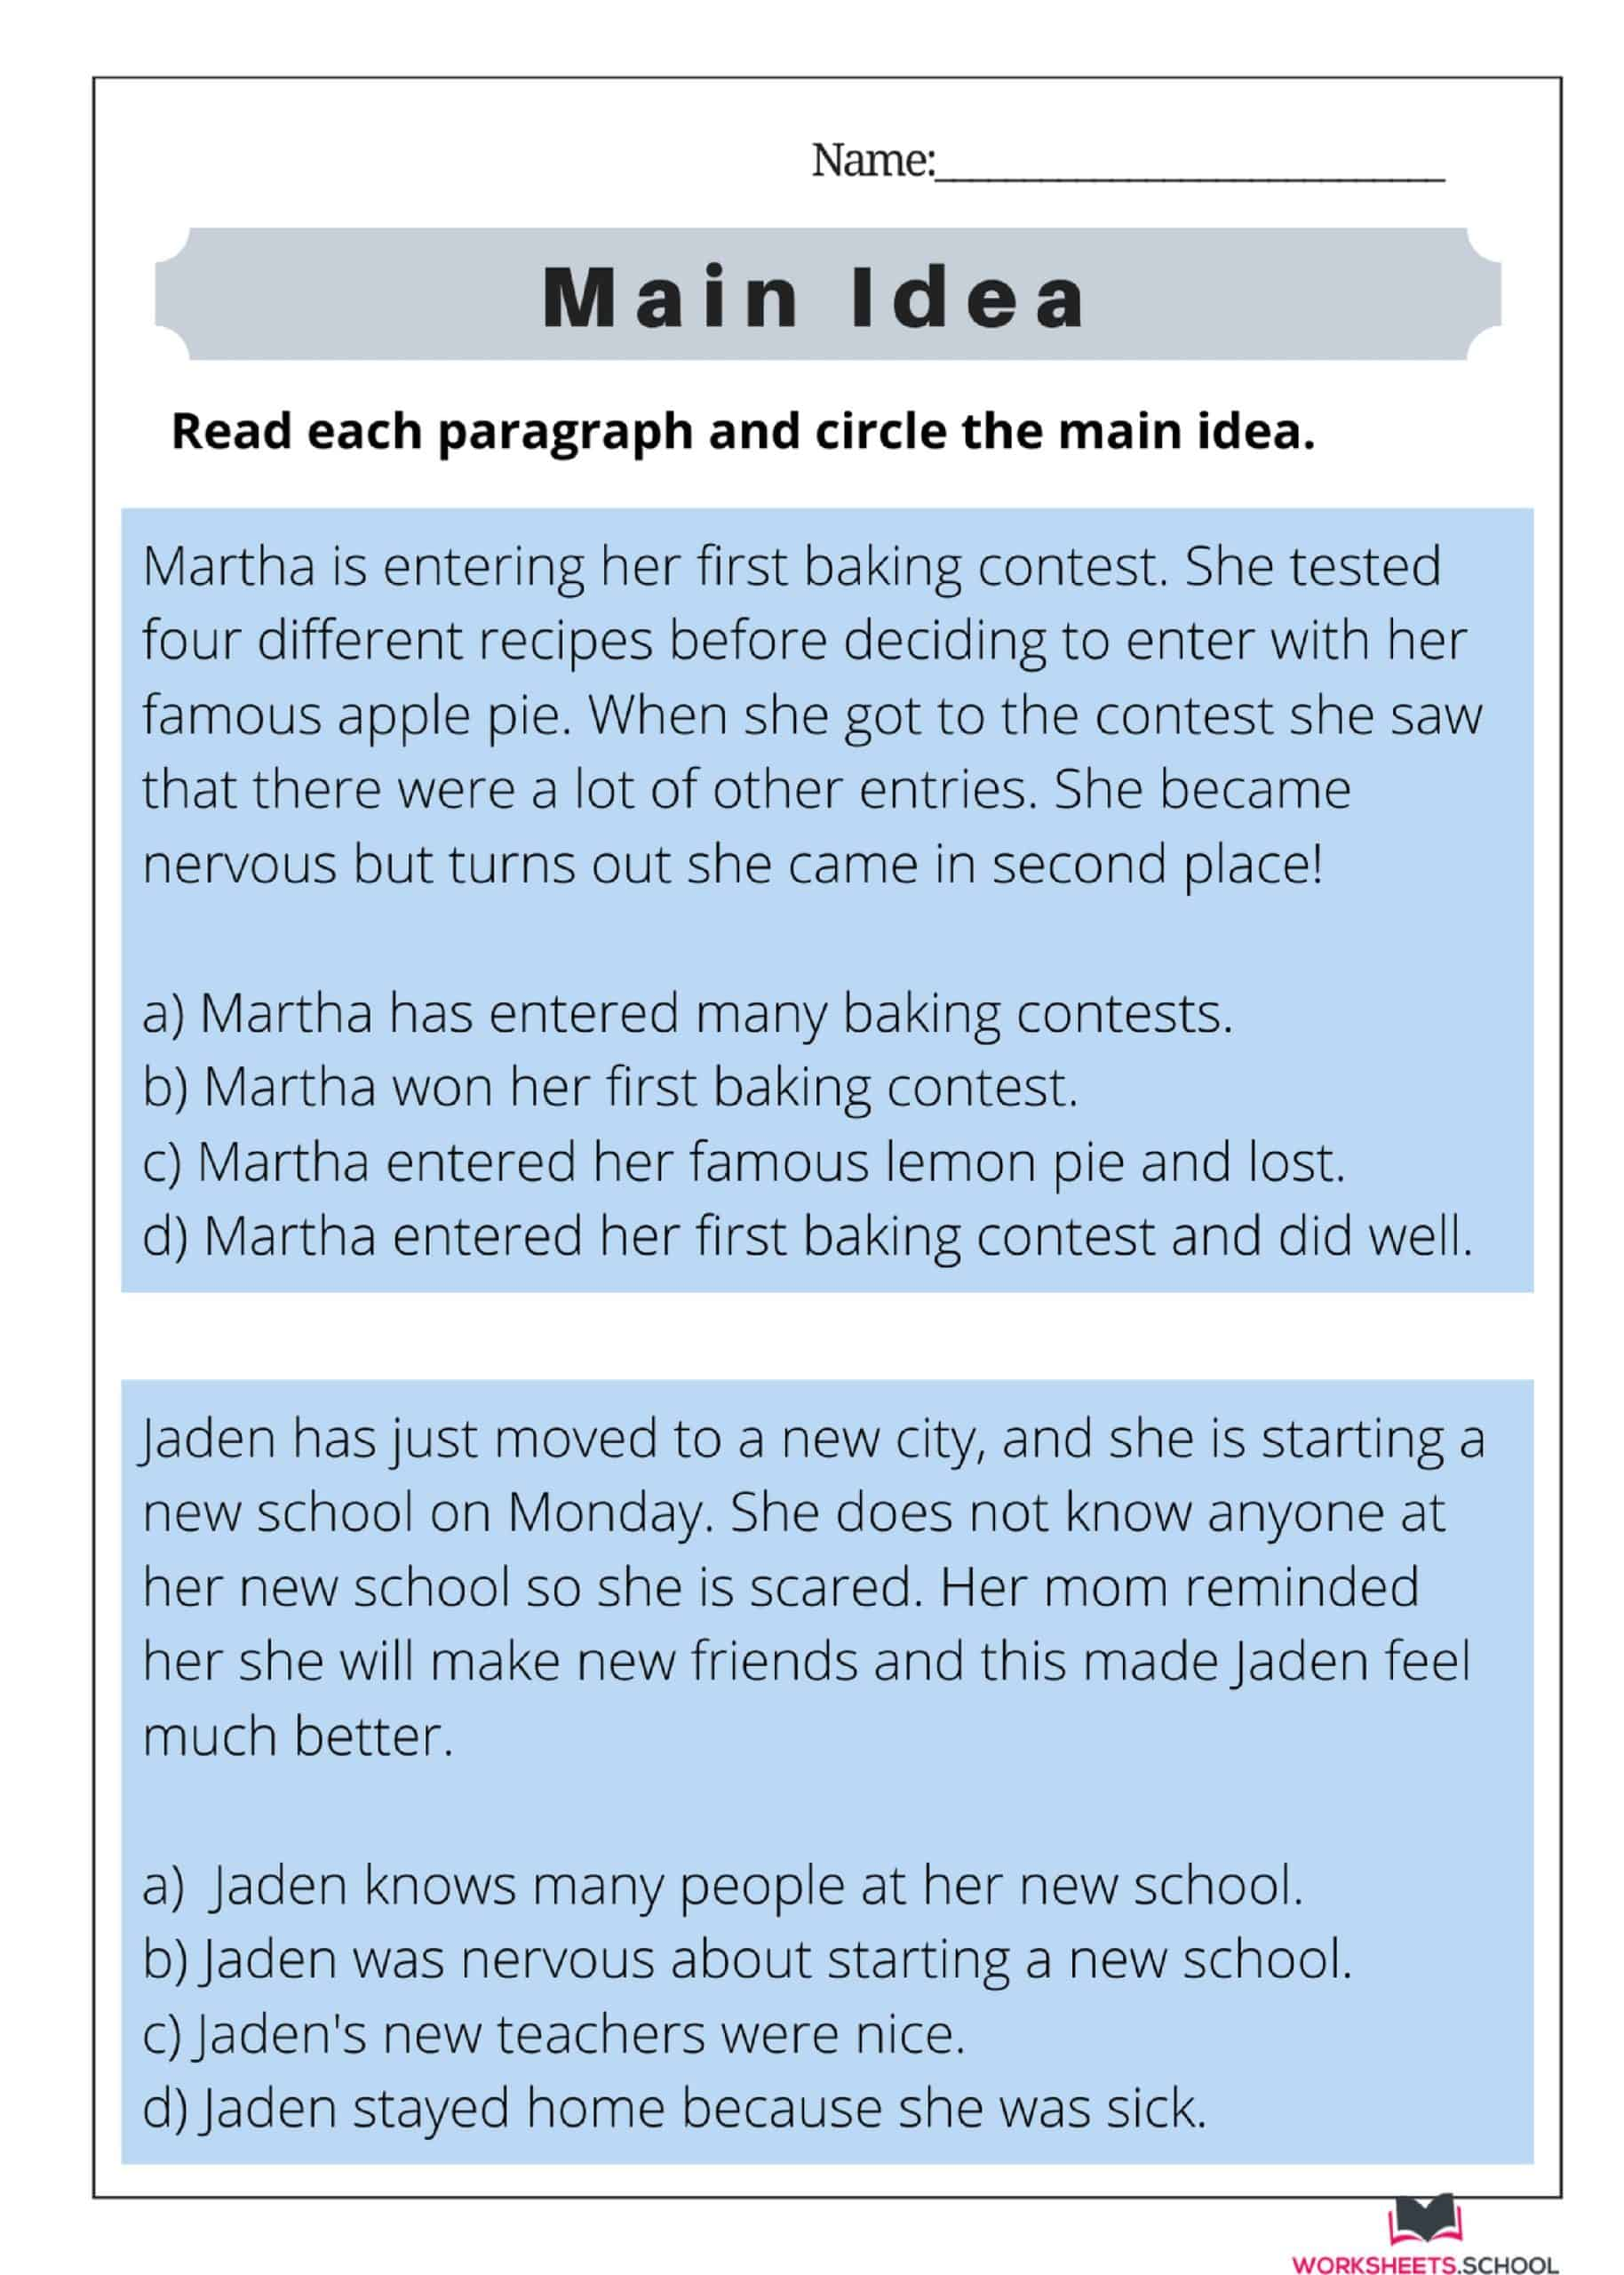 Main Idea Worksheet 06